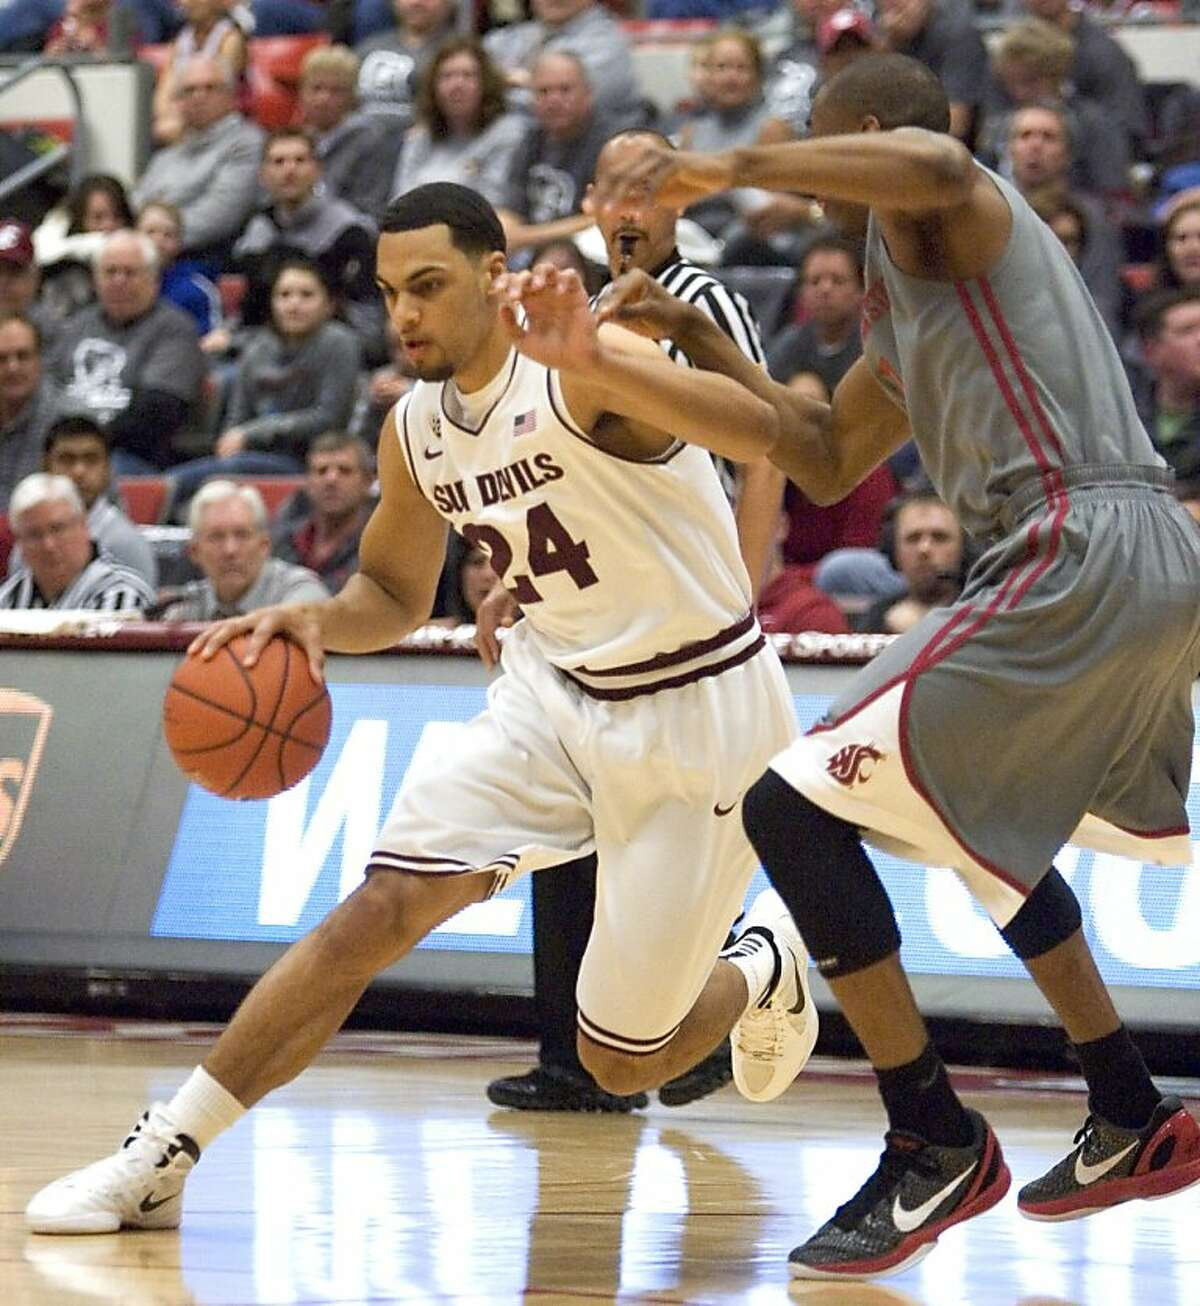 Arizona State guard Trent Lockett (24) drives on Washington State guard Marcus Capers during the first half of an NCAA college basketball game Saturday, Feb. 18, 2012, in Pullman, Wash. (AP Photo/Dean Hare)